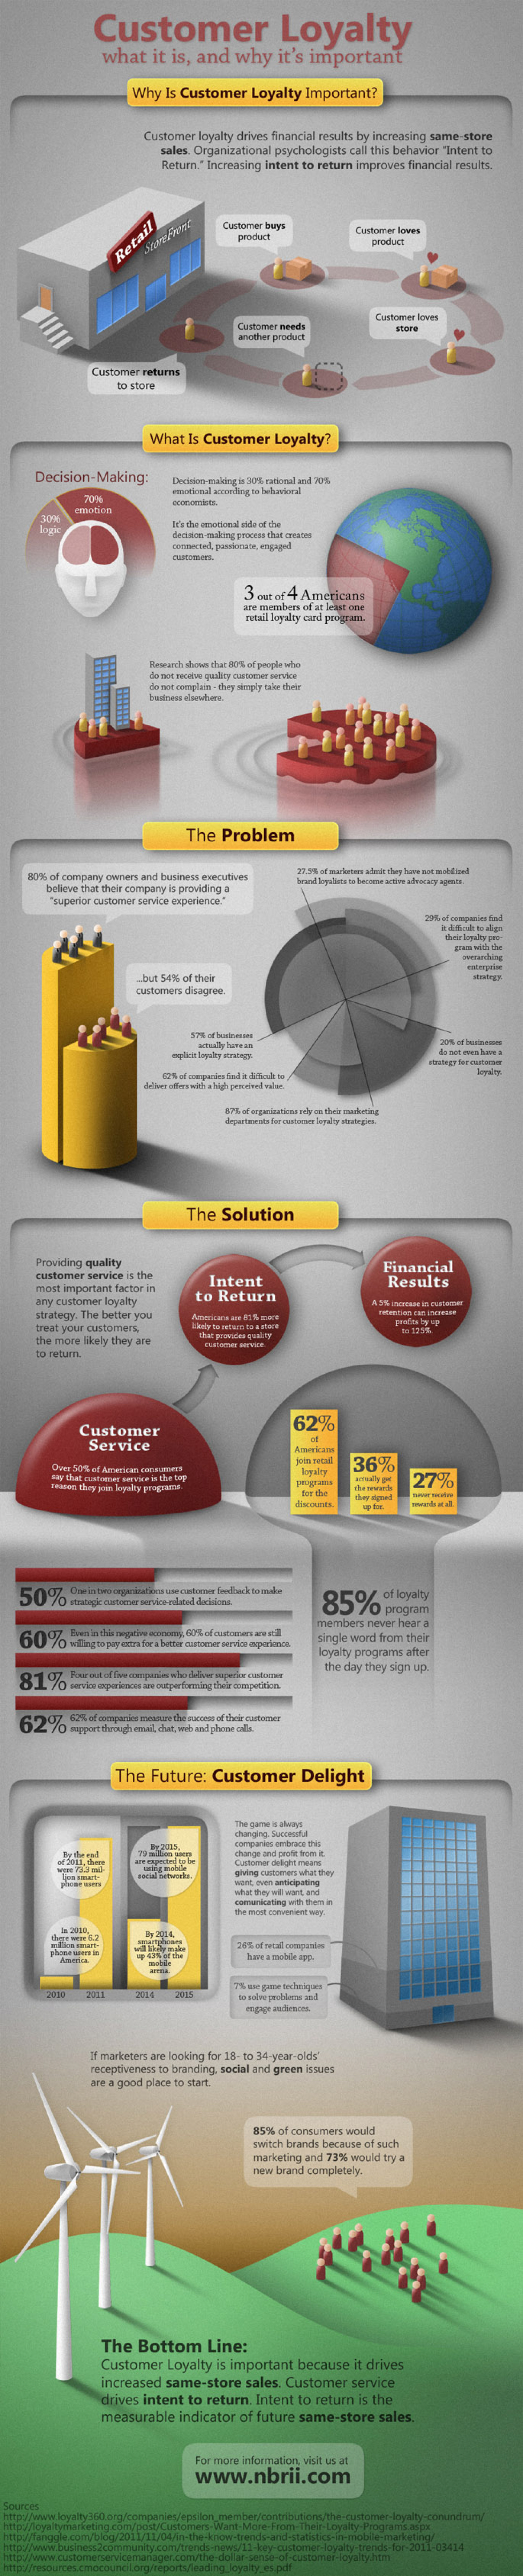 Customer Loyalty: What It Is And Why It's Important Infographic